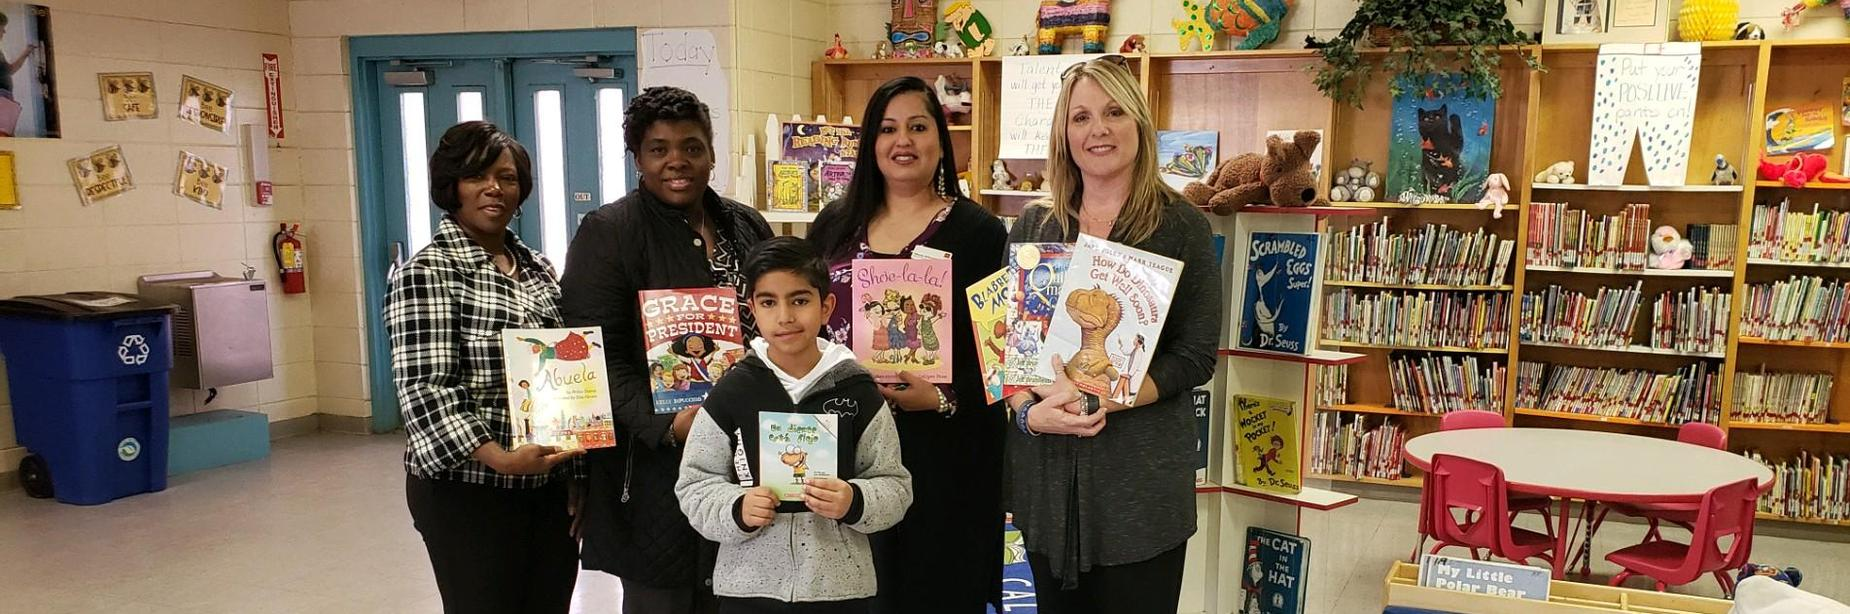 Wells Fargo bank donates books